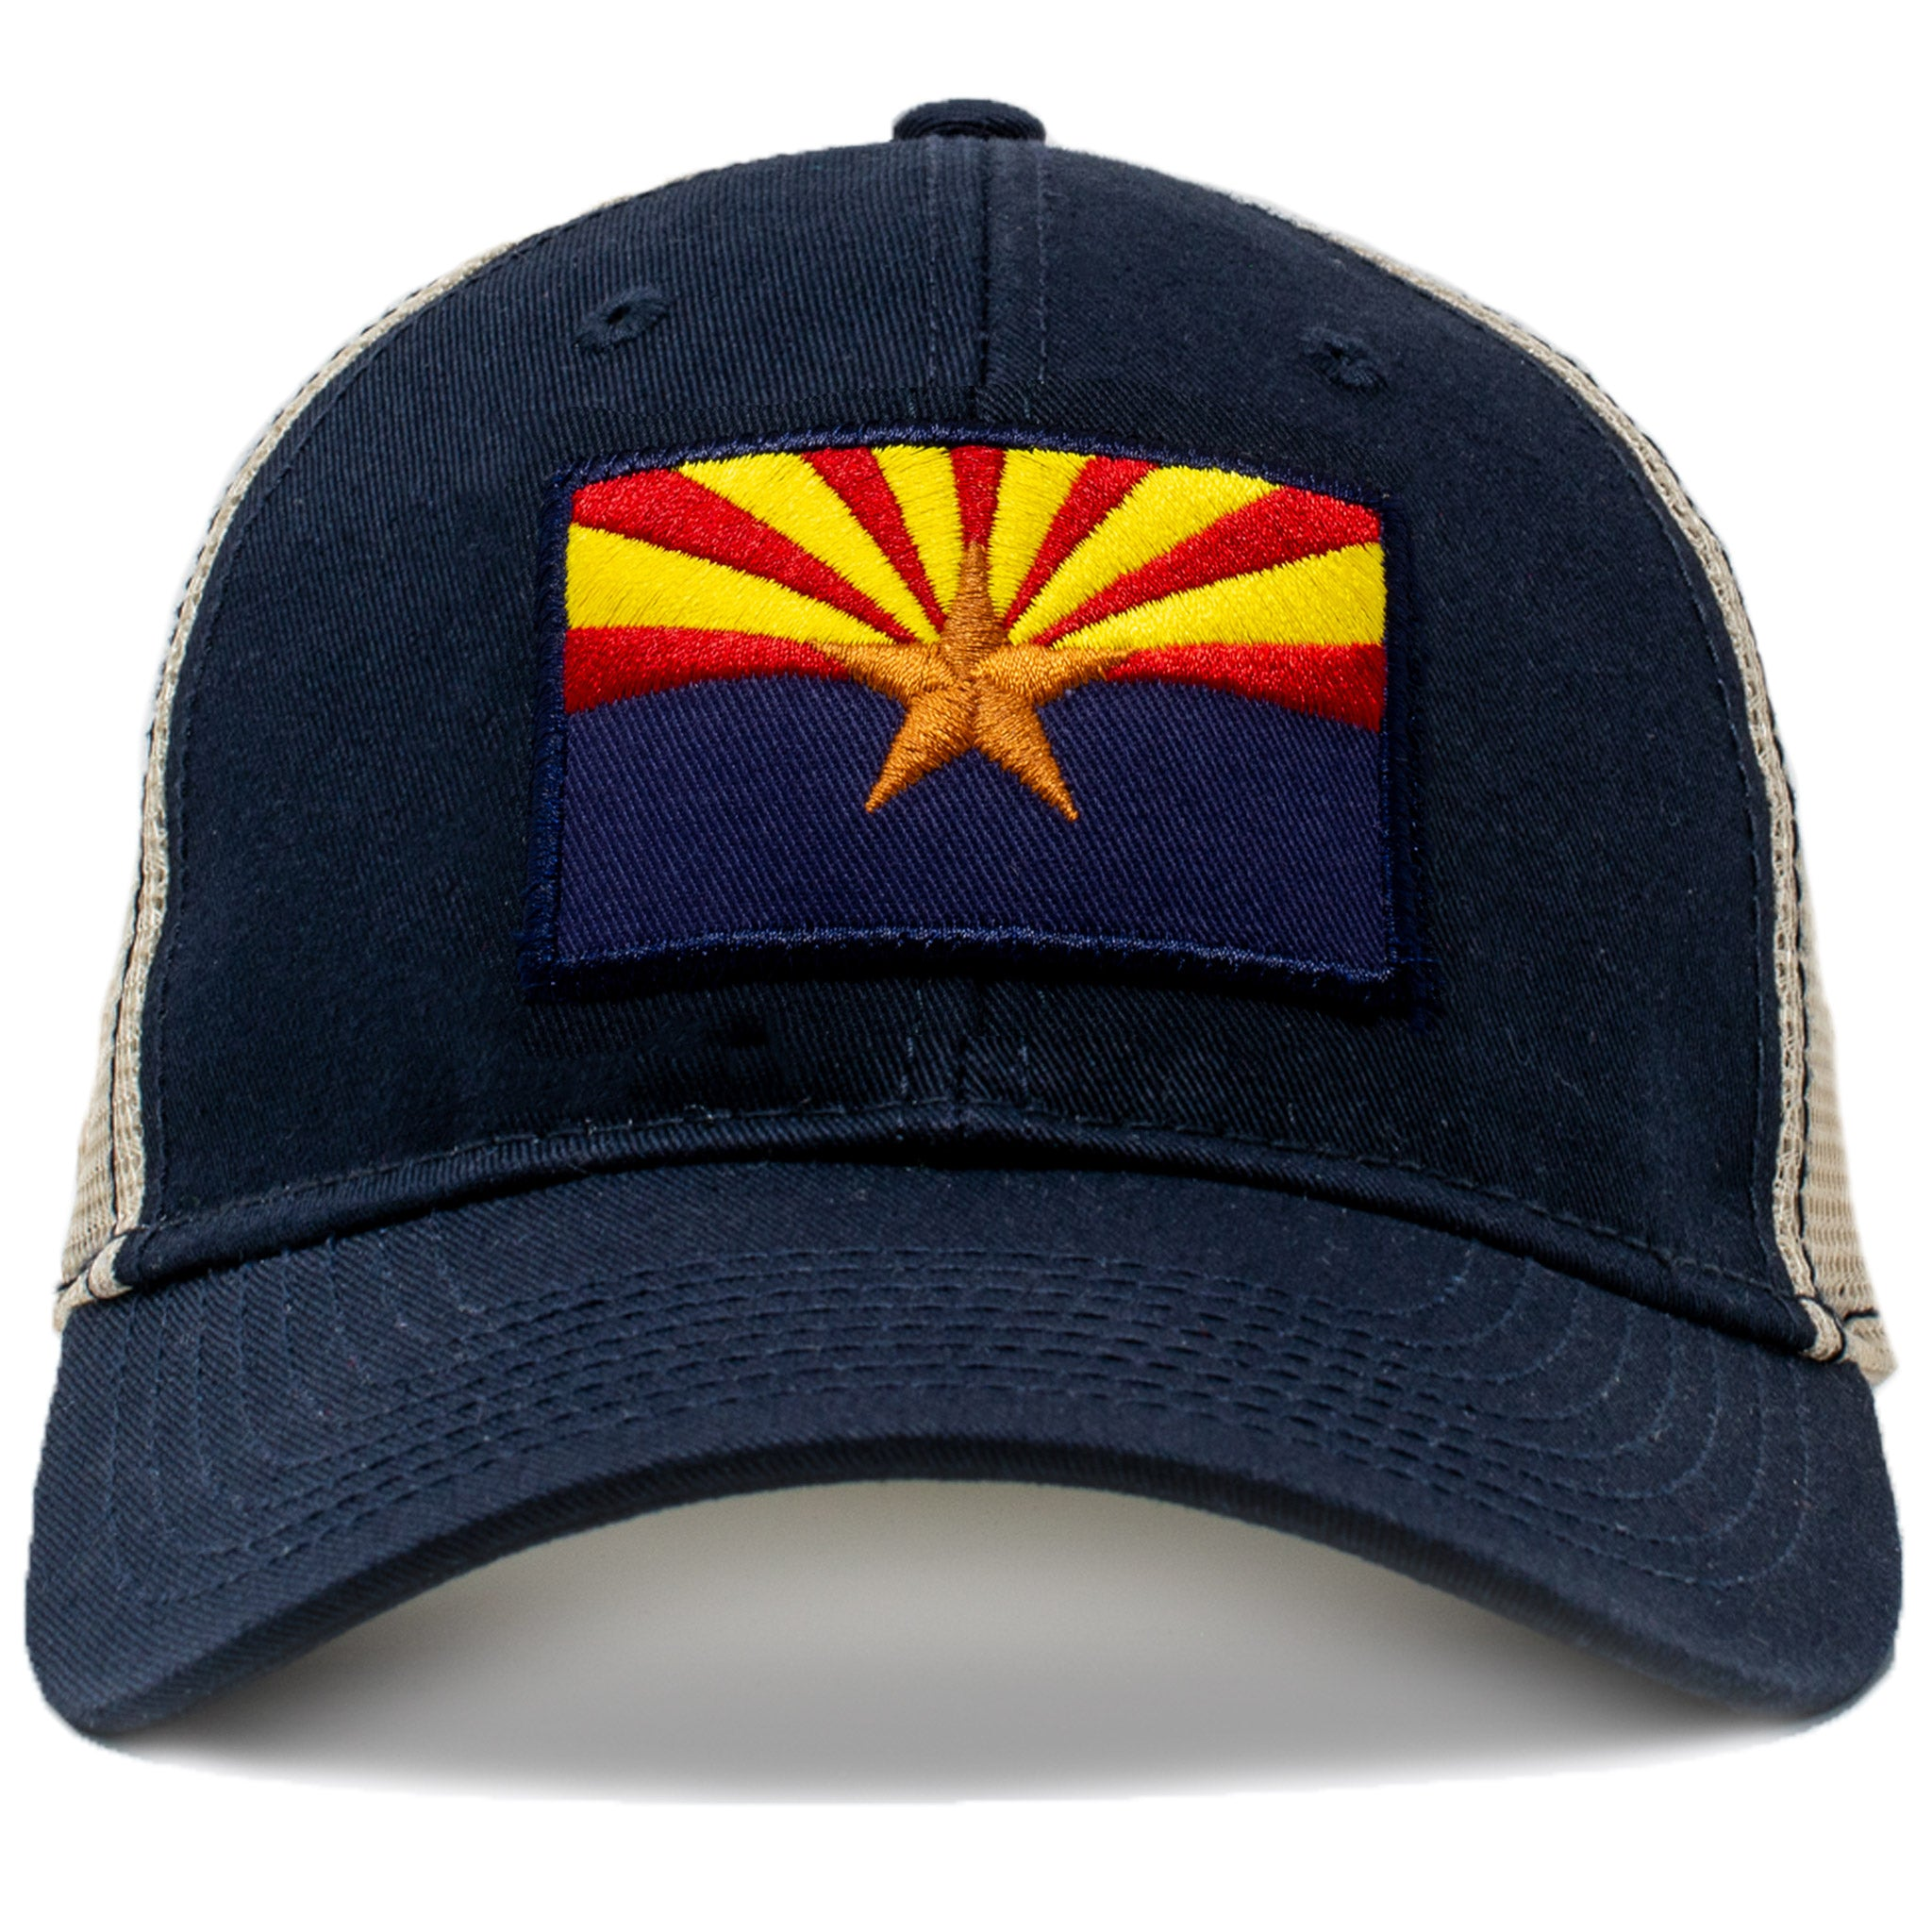 Arizona flag hat  Arizona 5a9abe7a197